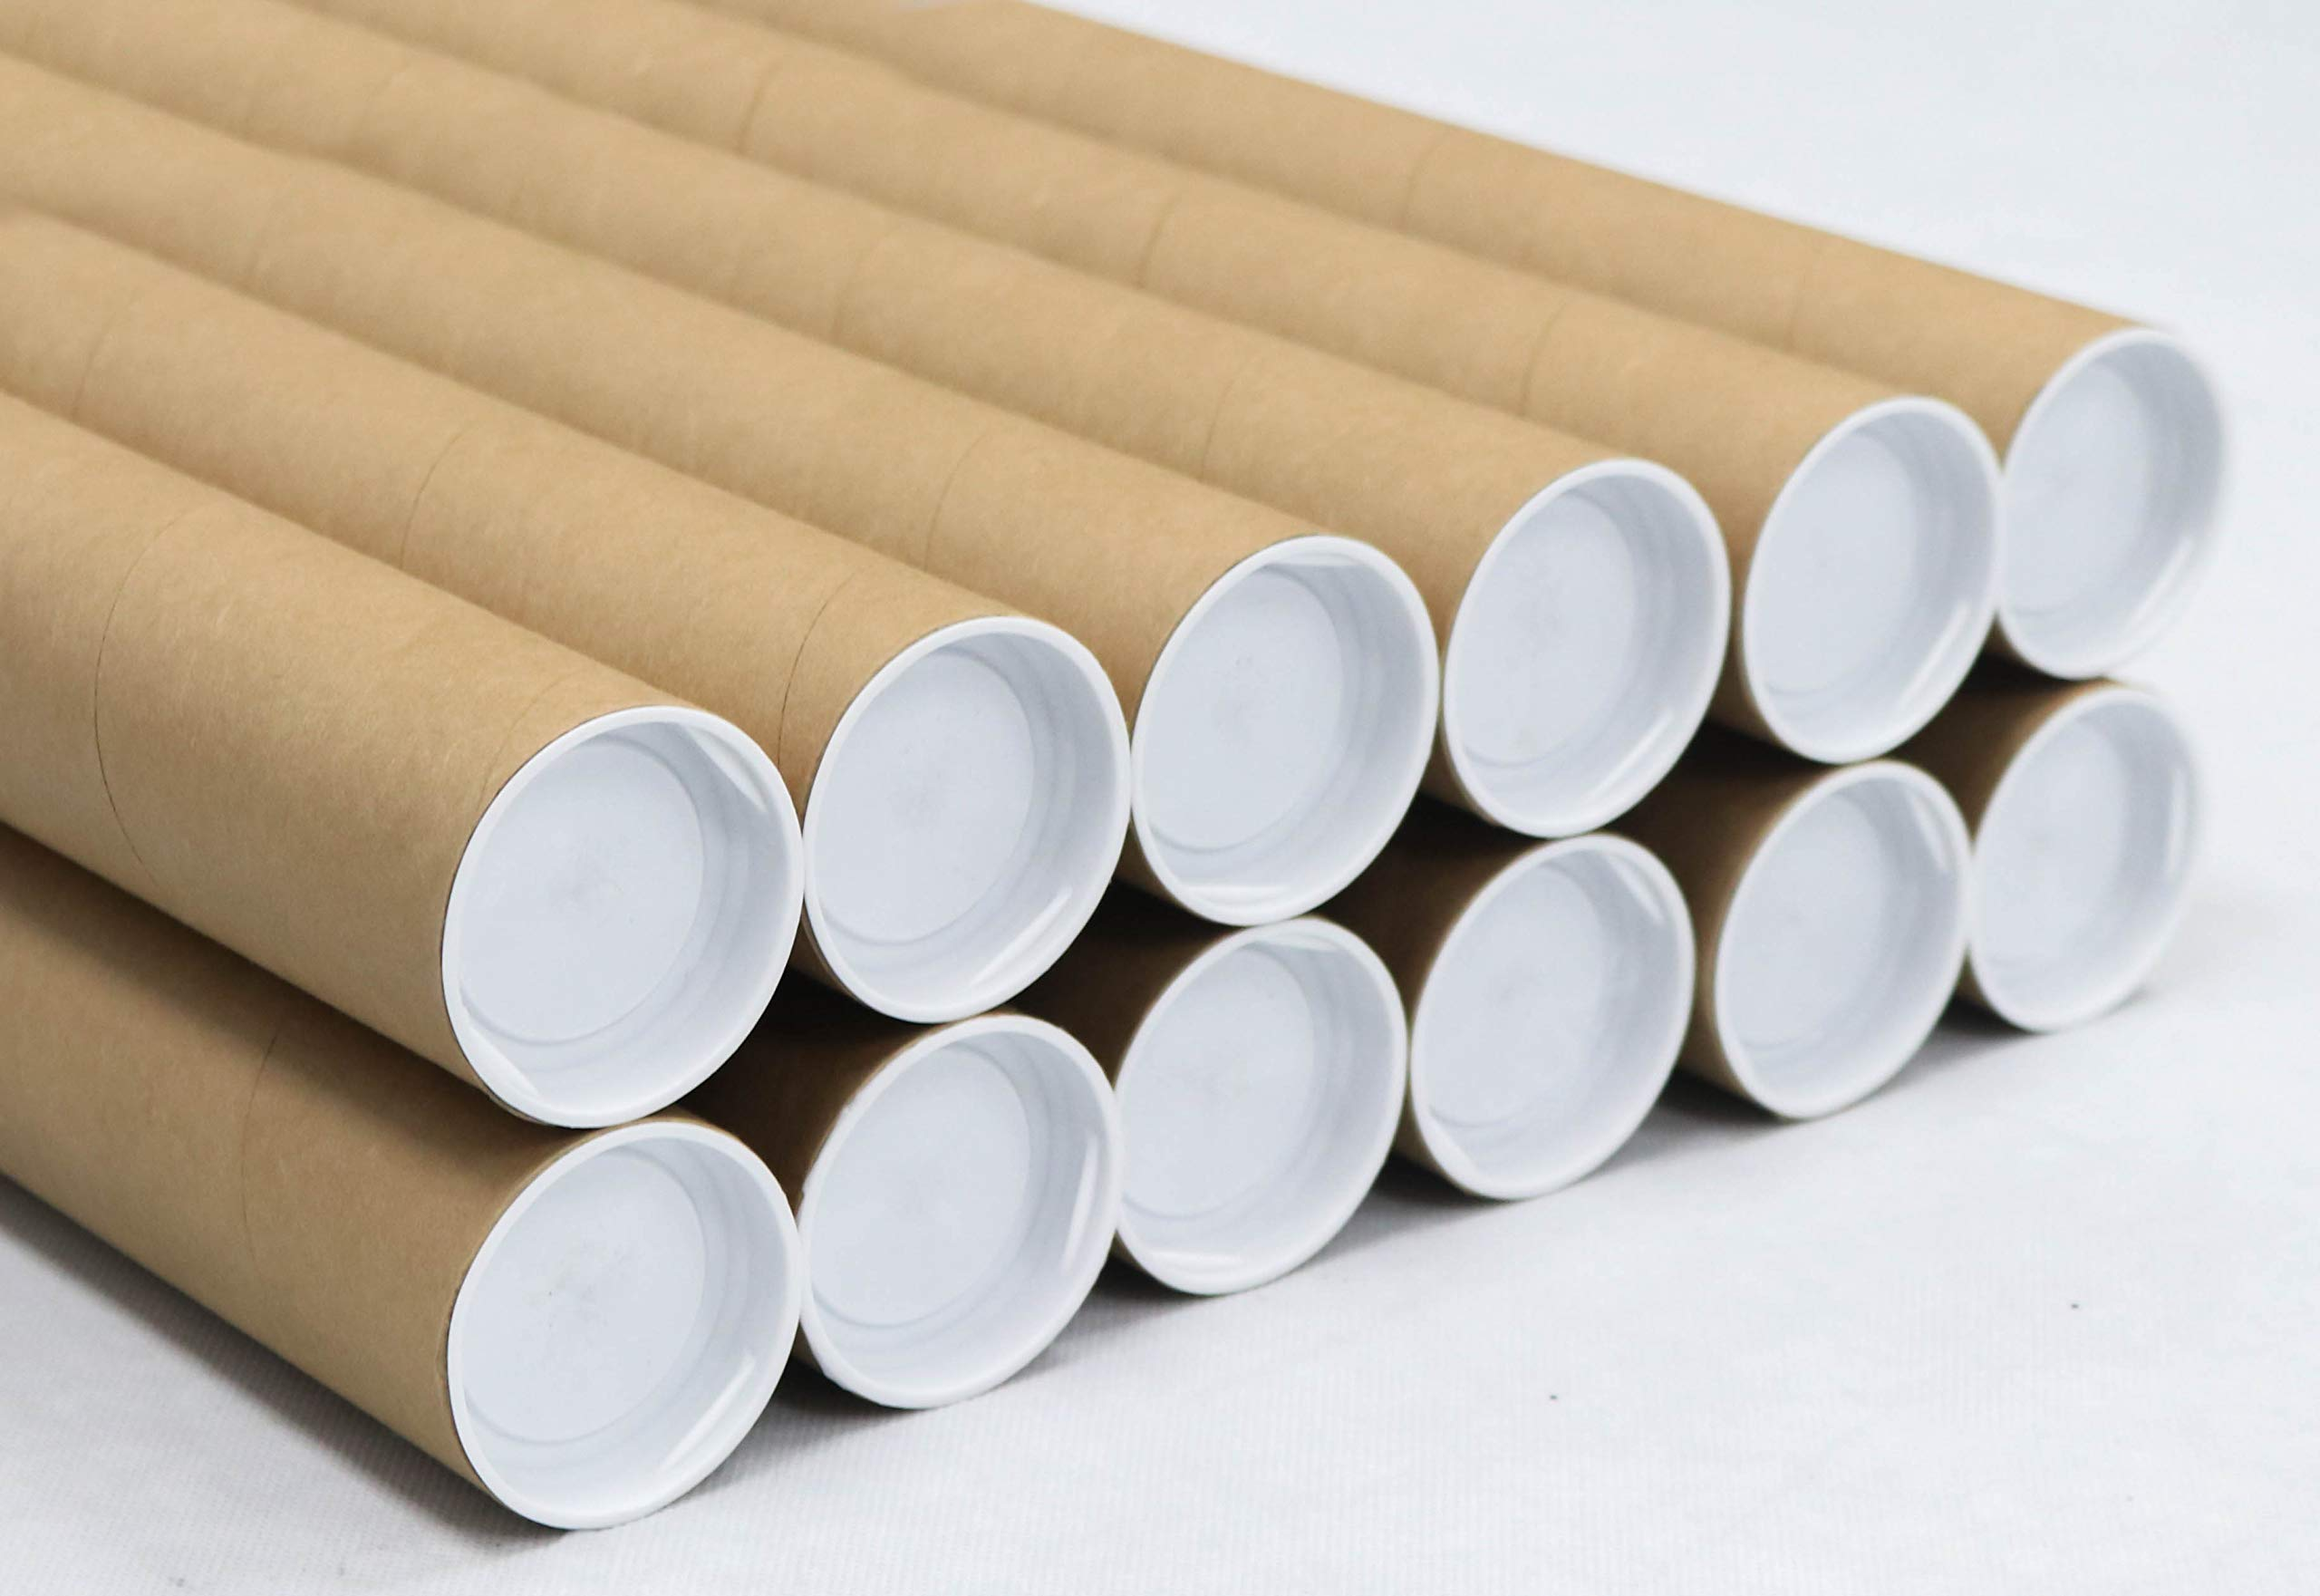 2 inch x 15 inch, Mailing Tubes with Caps (12 Pack) | MagicWater Supply